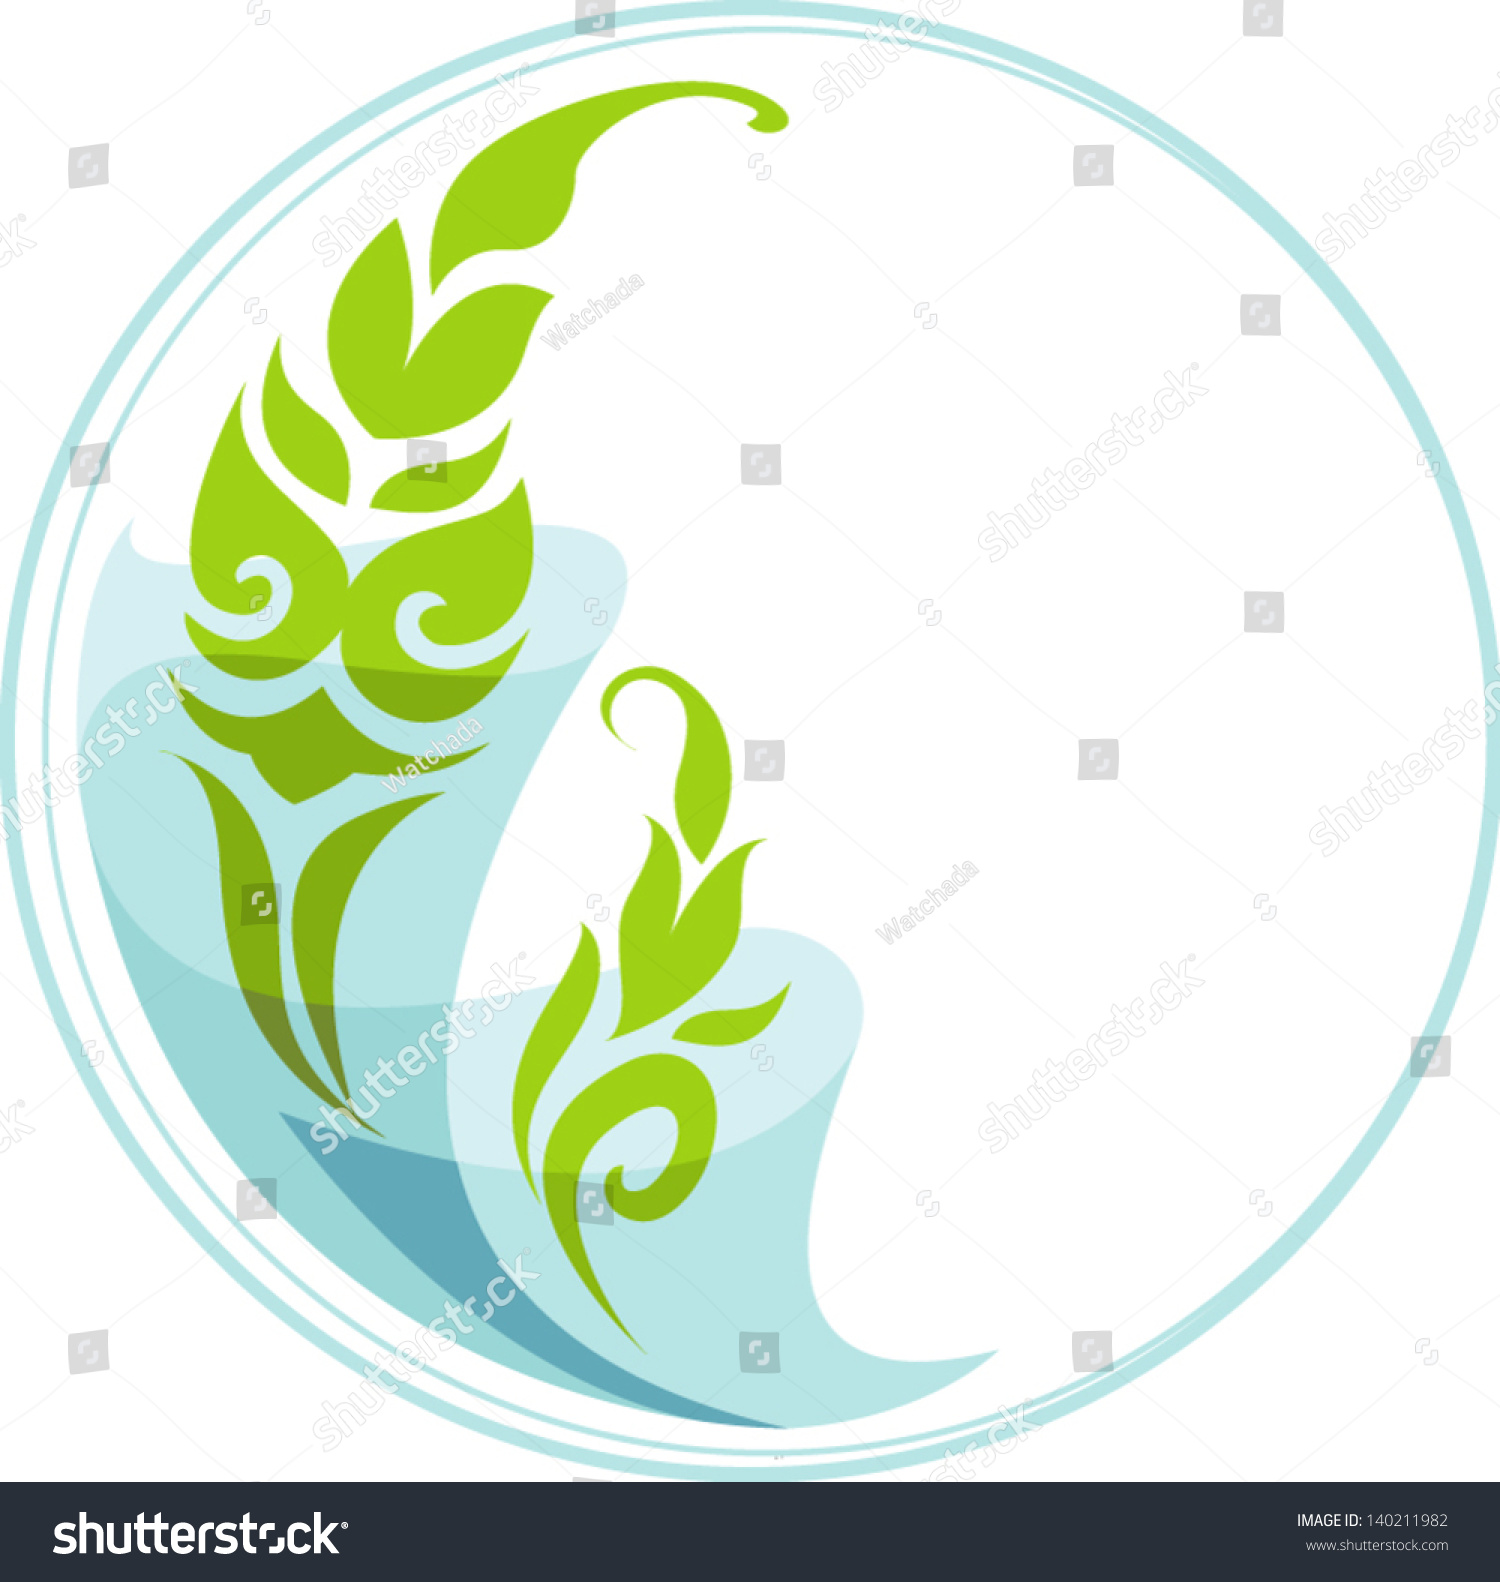 Plants water symbol style meaning exuberance stock vector 140211982 plants and water in symbol style the meaning of exuberance and decorative object in biocorpaavc Gallery